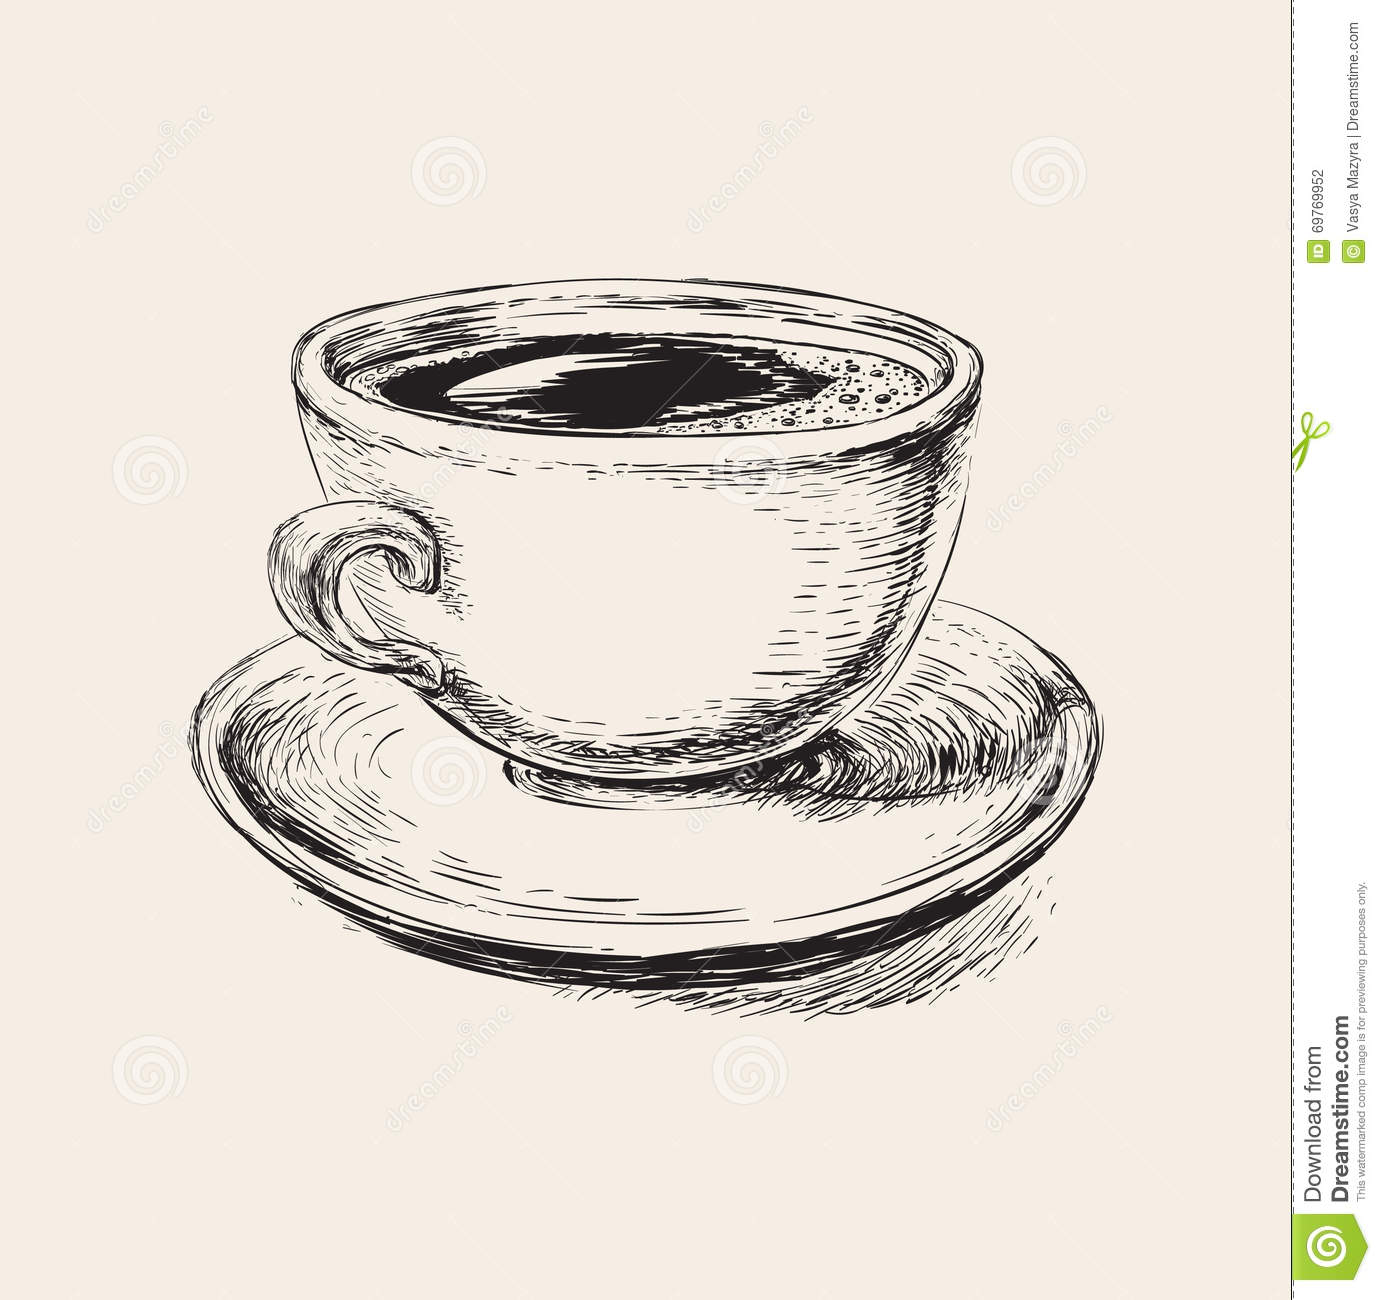 Coffee cup sketch - Royalty Free Vector Download Hand Drawn Sketch Coffee Cup